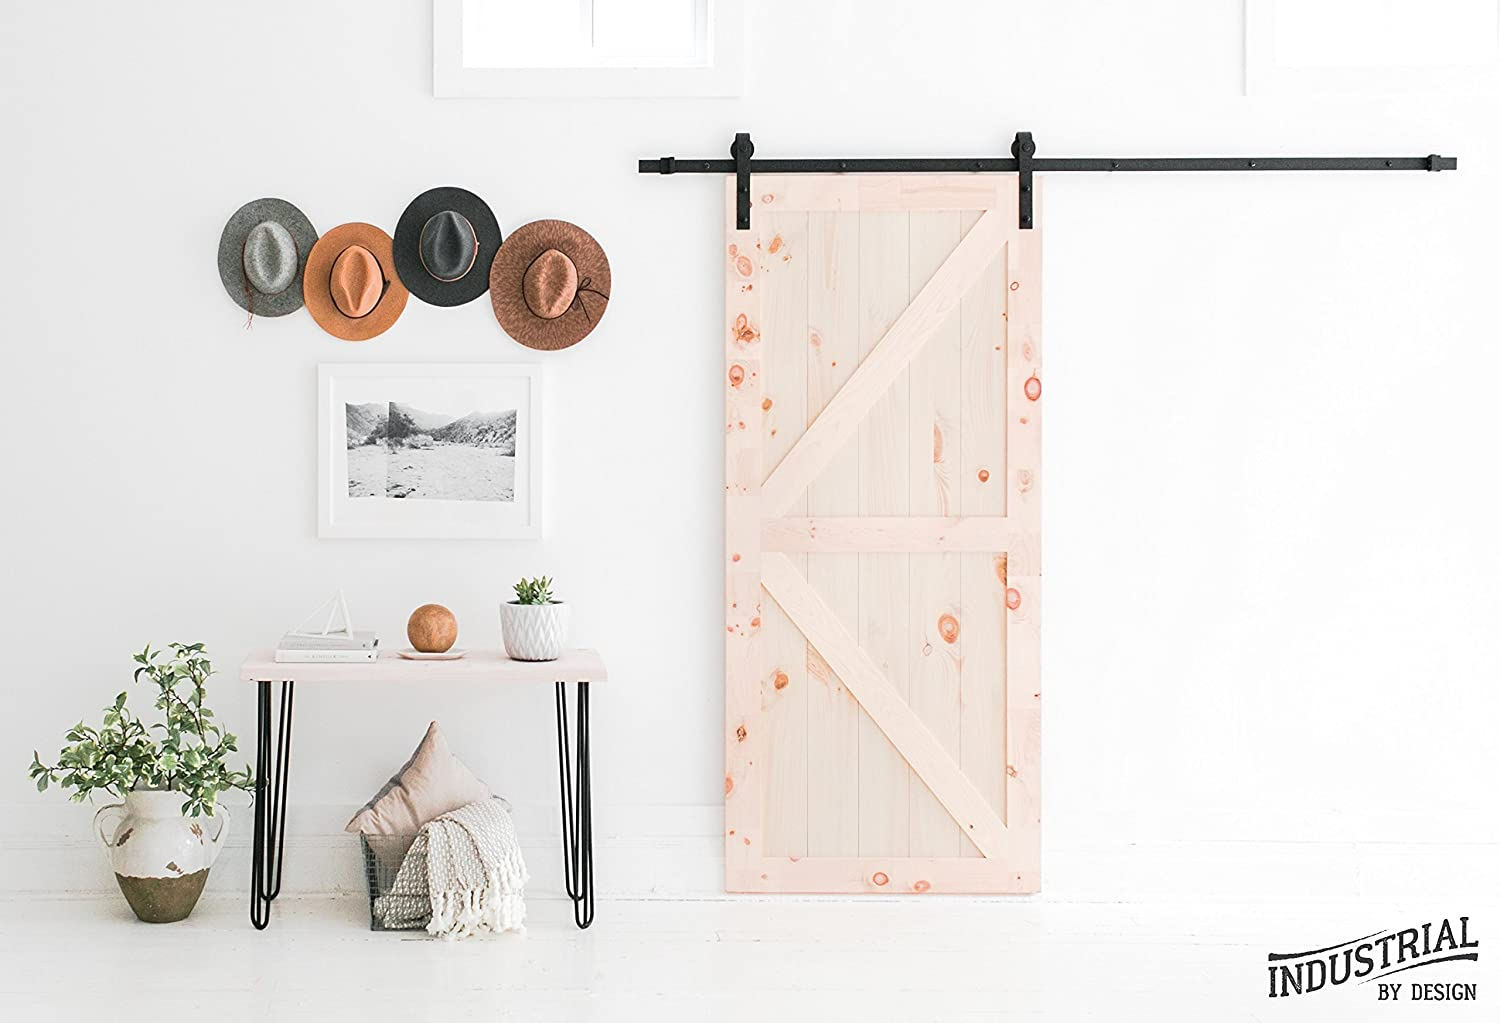 100/% Steel Designed in USA Ultra Smooth and Quiet INDUSTRIAL BY DESIGN 10ft Heavy Duty Double Sliding Barn Door Hardware Kit Easy Installation Supports 250 lbs